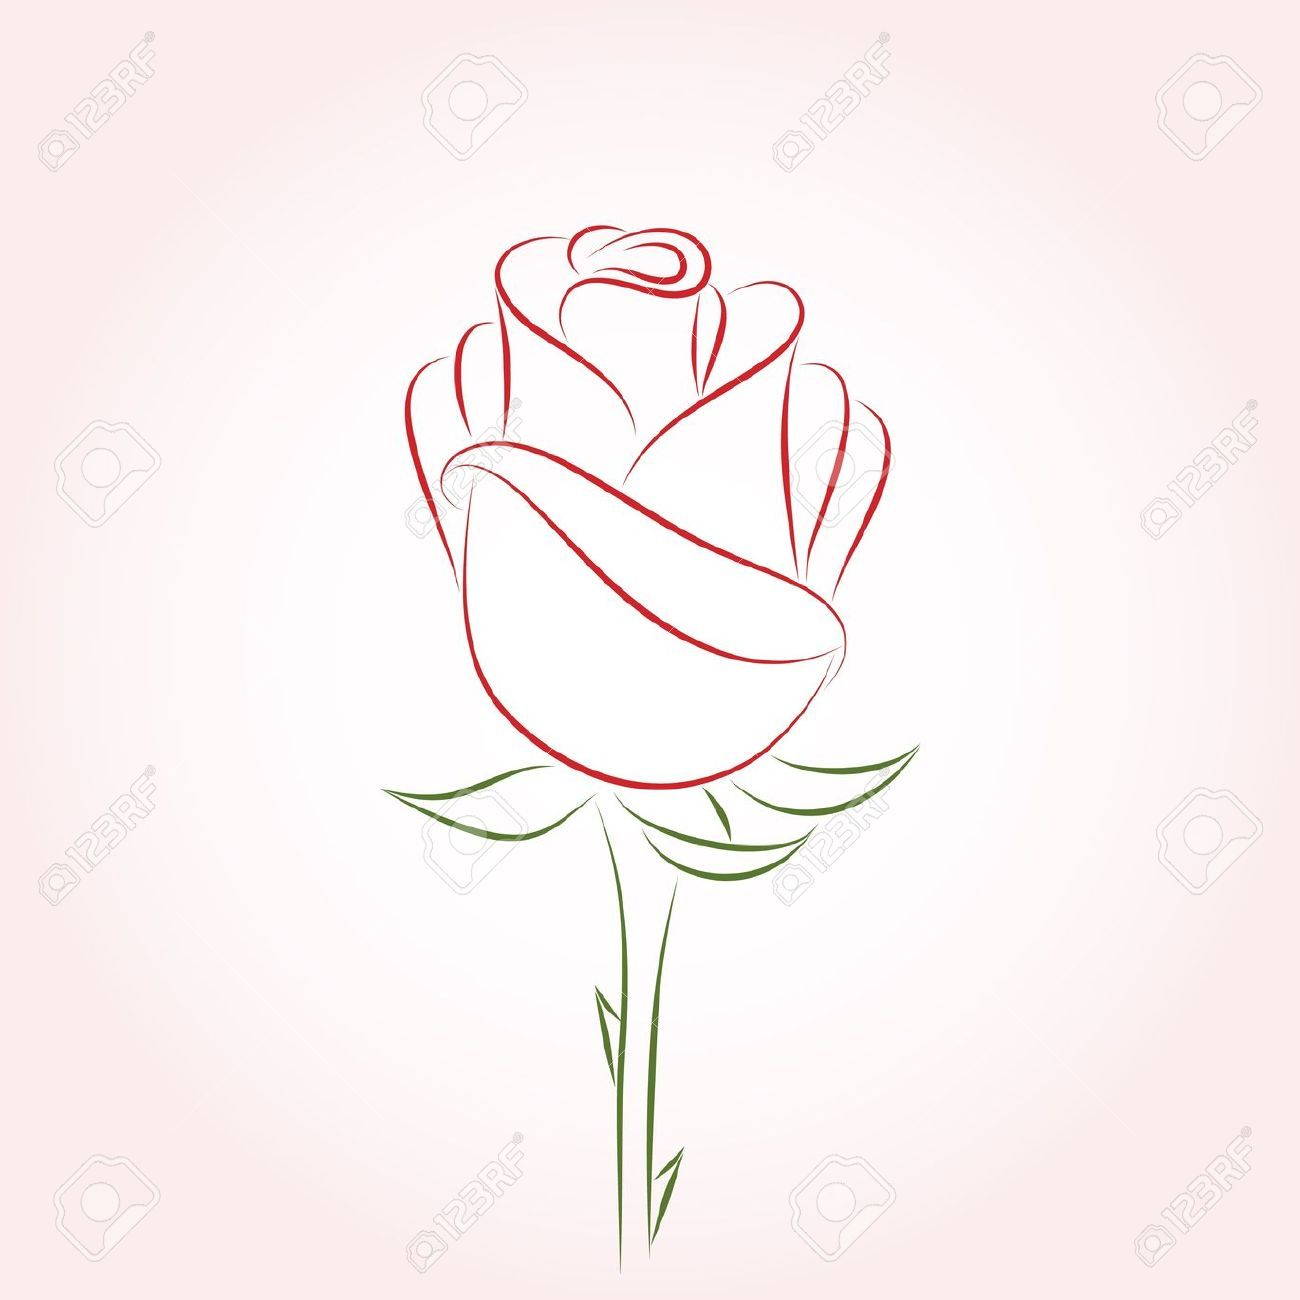 Red Rose Outline Roses Drawing Outline Drawings Flower Drawing